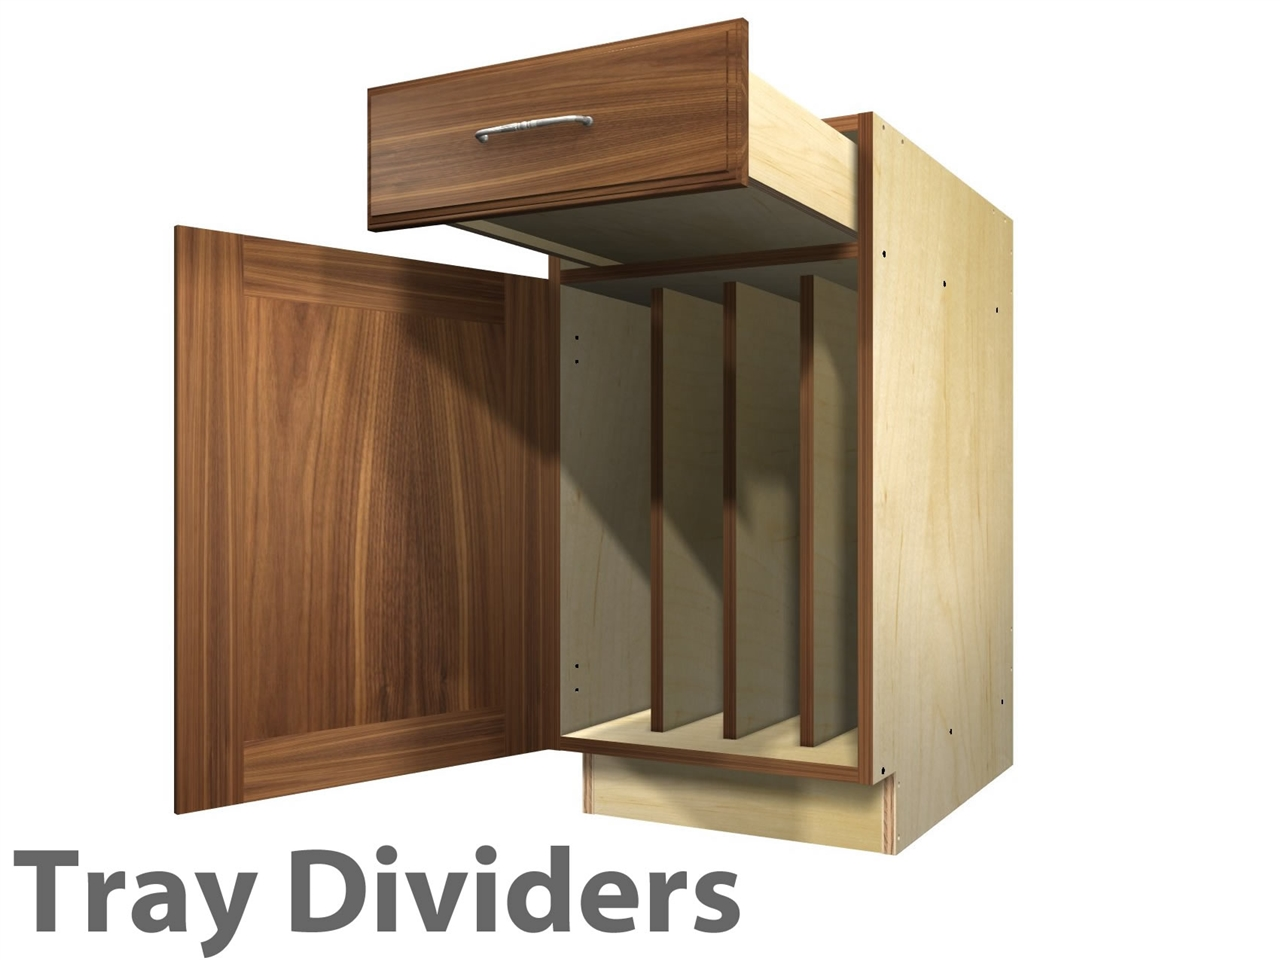 1 door and 1 drawer TRAY DIVIDERS